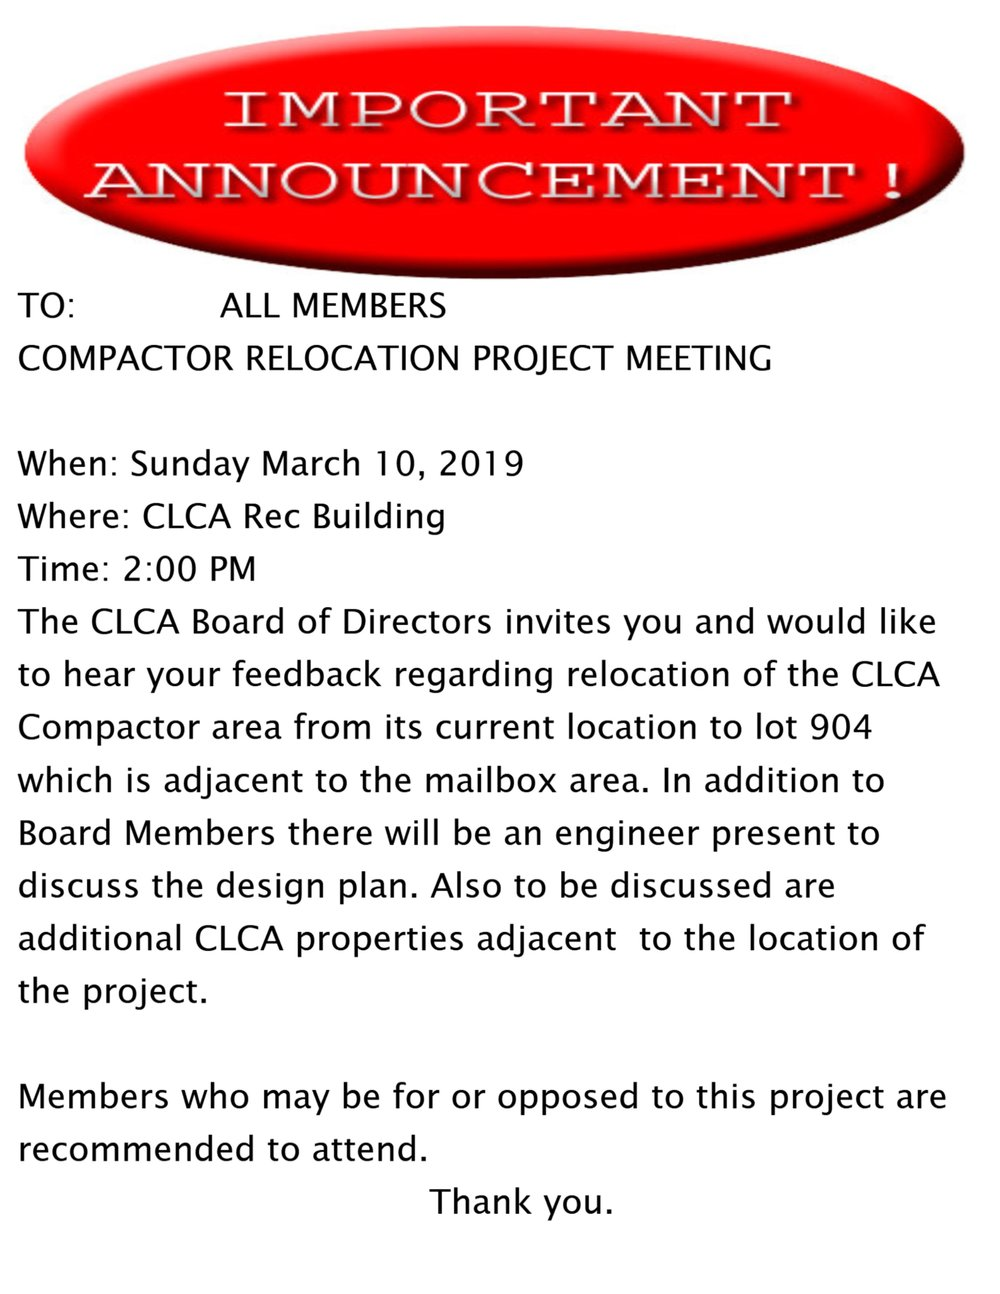 compactor proj meeting formal announcement feb 2019.jpg